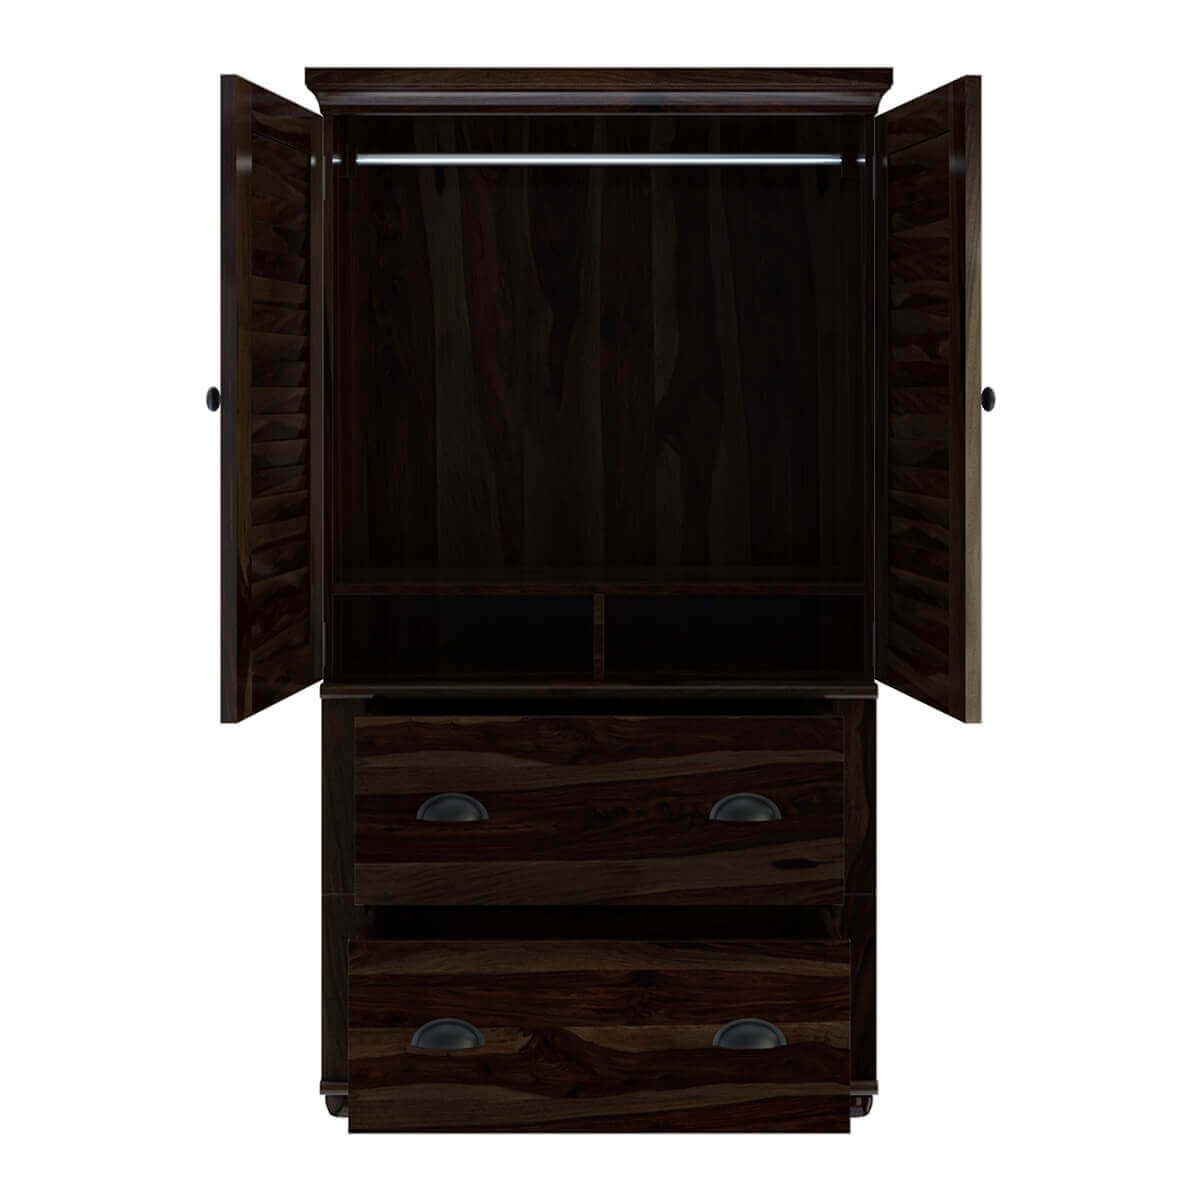 Indiana Rustic Solid Wood Wardrobe Armoire With Drawers ...